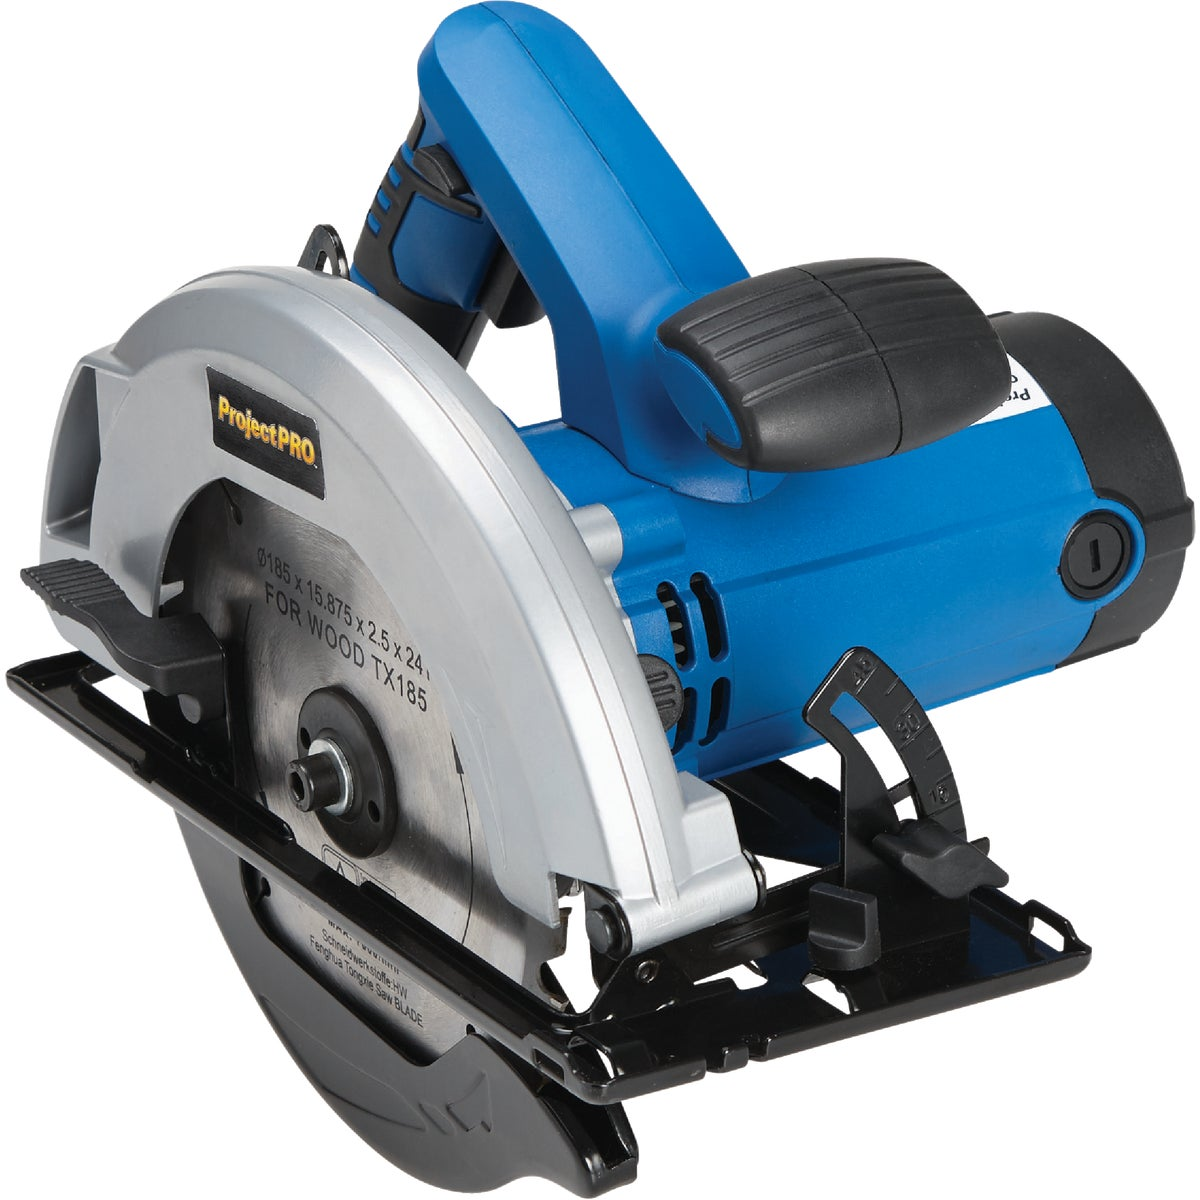 "7-1/4"" CIRCULAR SAW - 311264 by Do it Best"